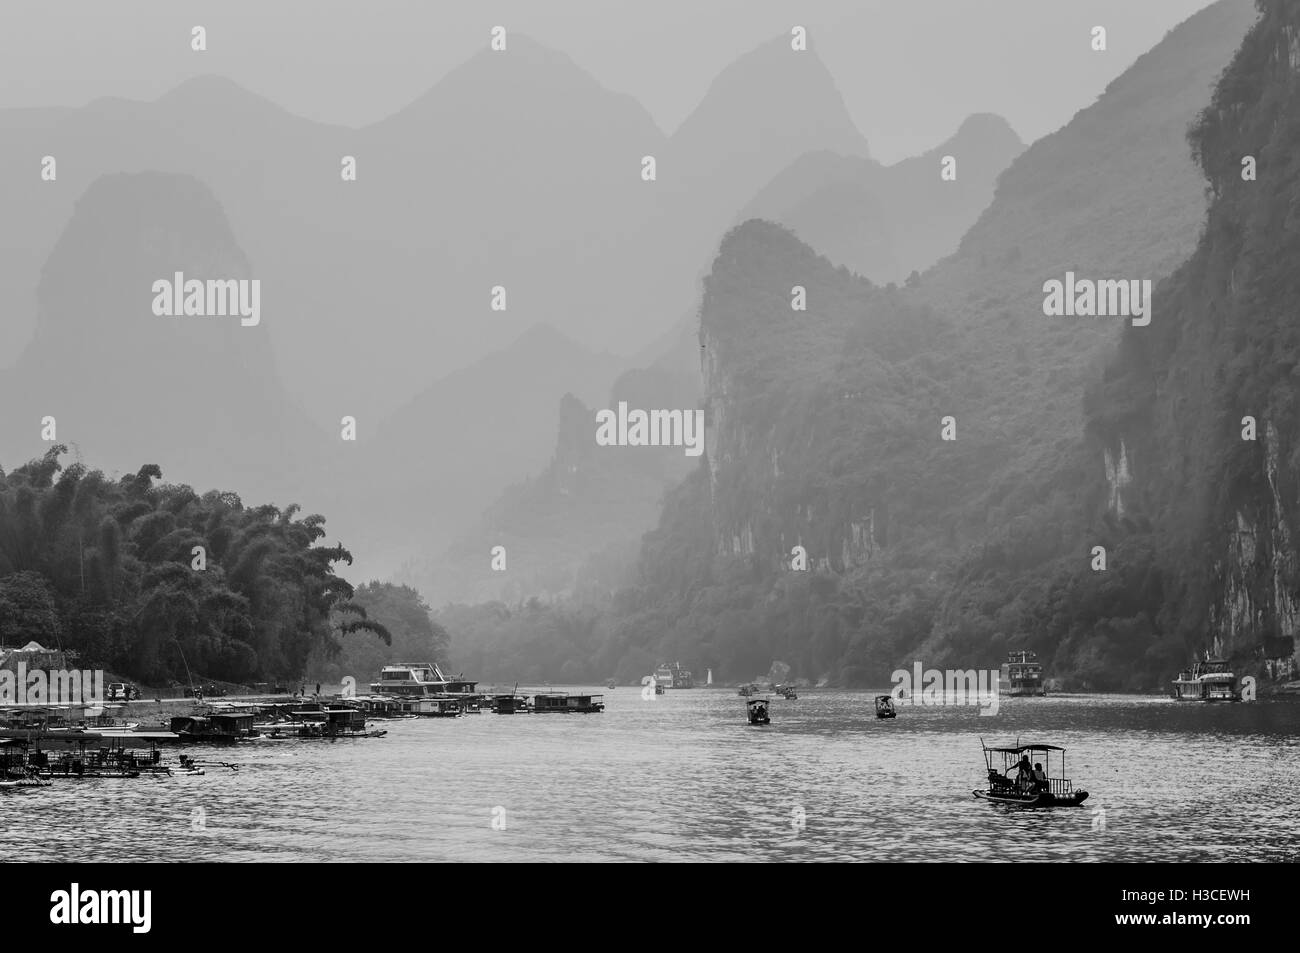 Cruise ship and boats packed with tourists travels the magnificent scenic route in the haze - Stock Image